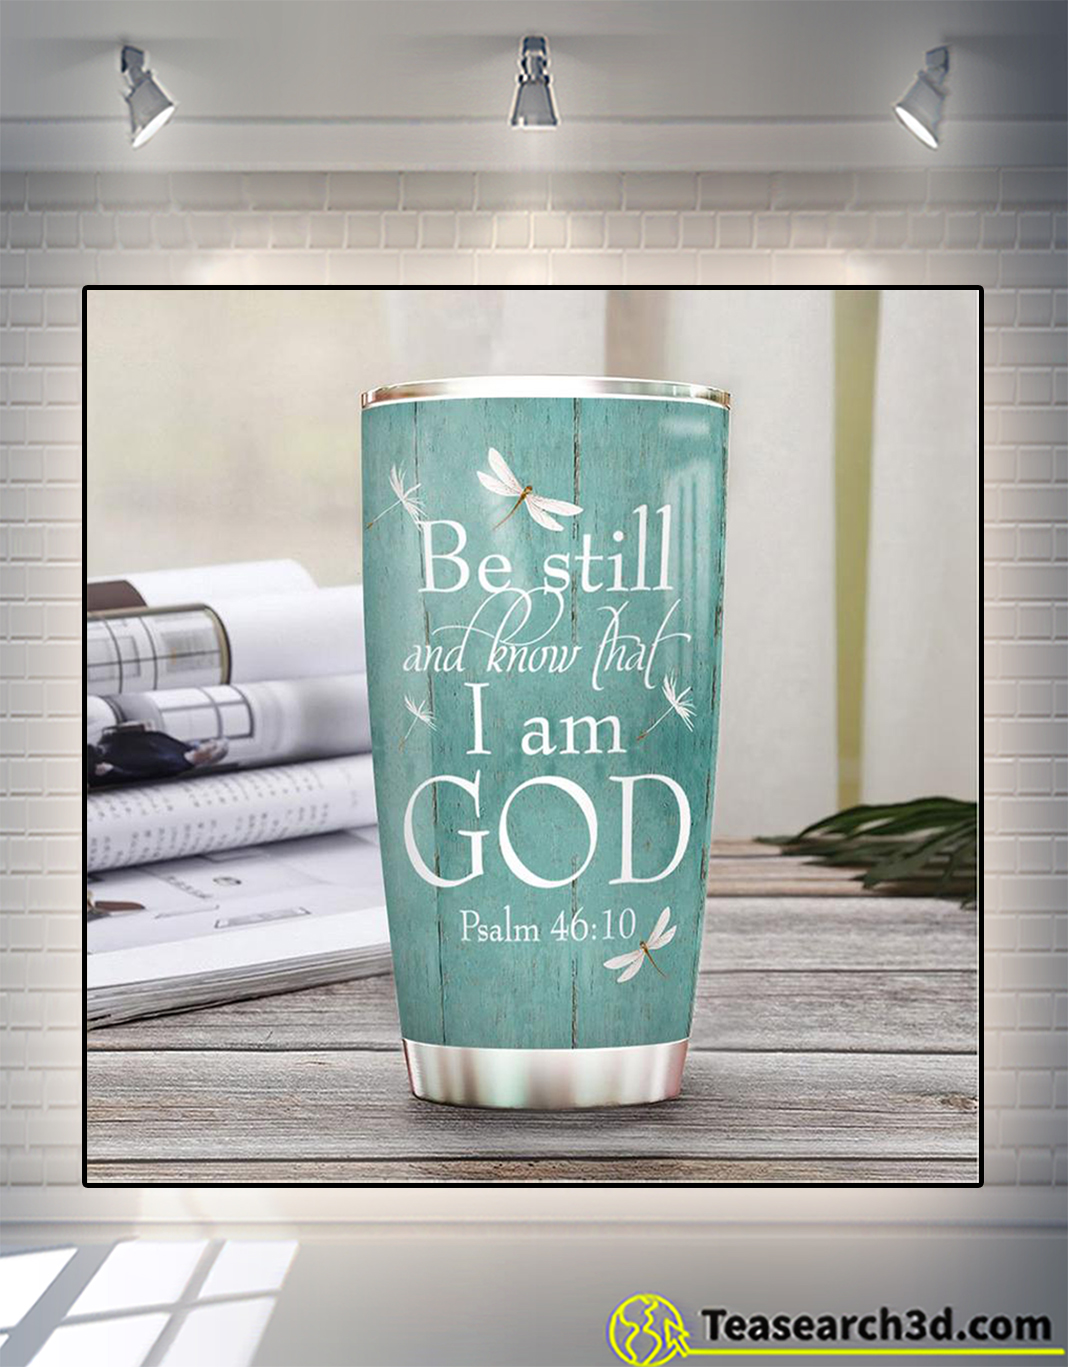 Personalized custom name faith be still and know that I am god tumbler